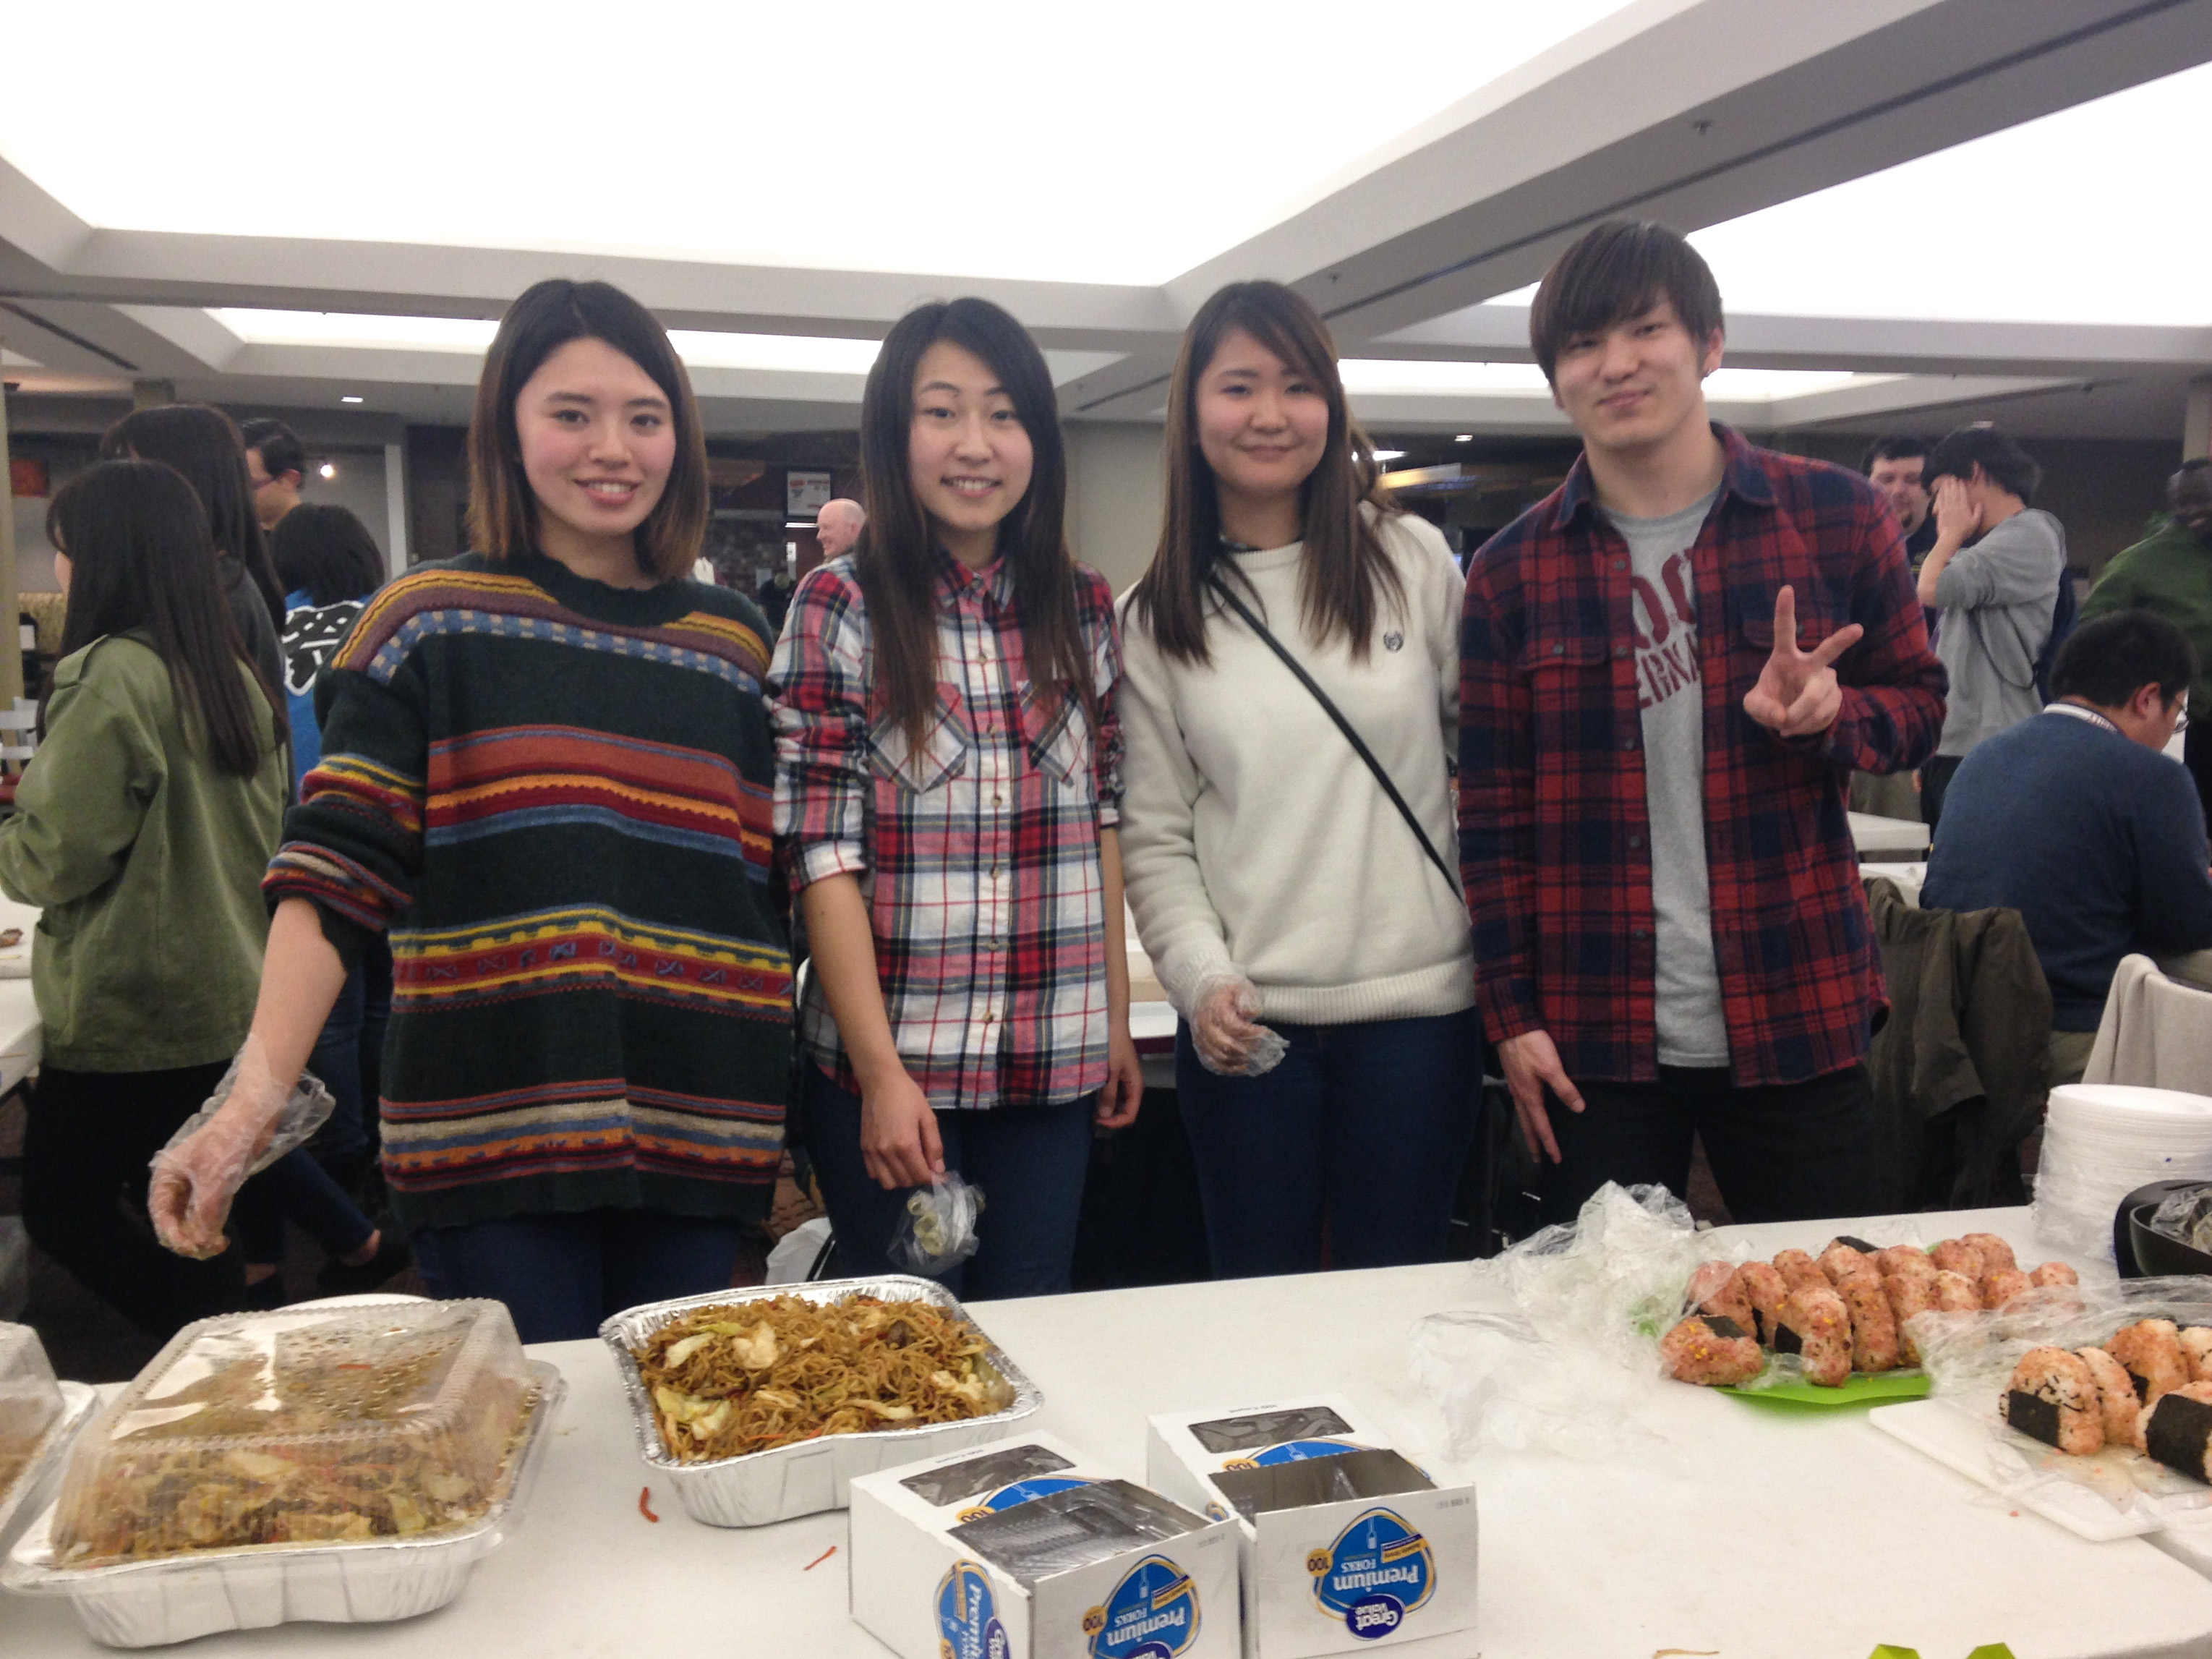 Students tried different types of food and participated in Chinese and Japanese activities, in order to learn about new cultures at Asian Night Feb. 22.  Photo by Emily Thornton